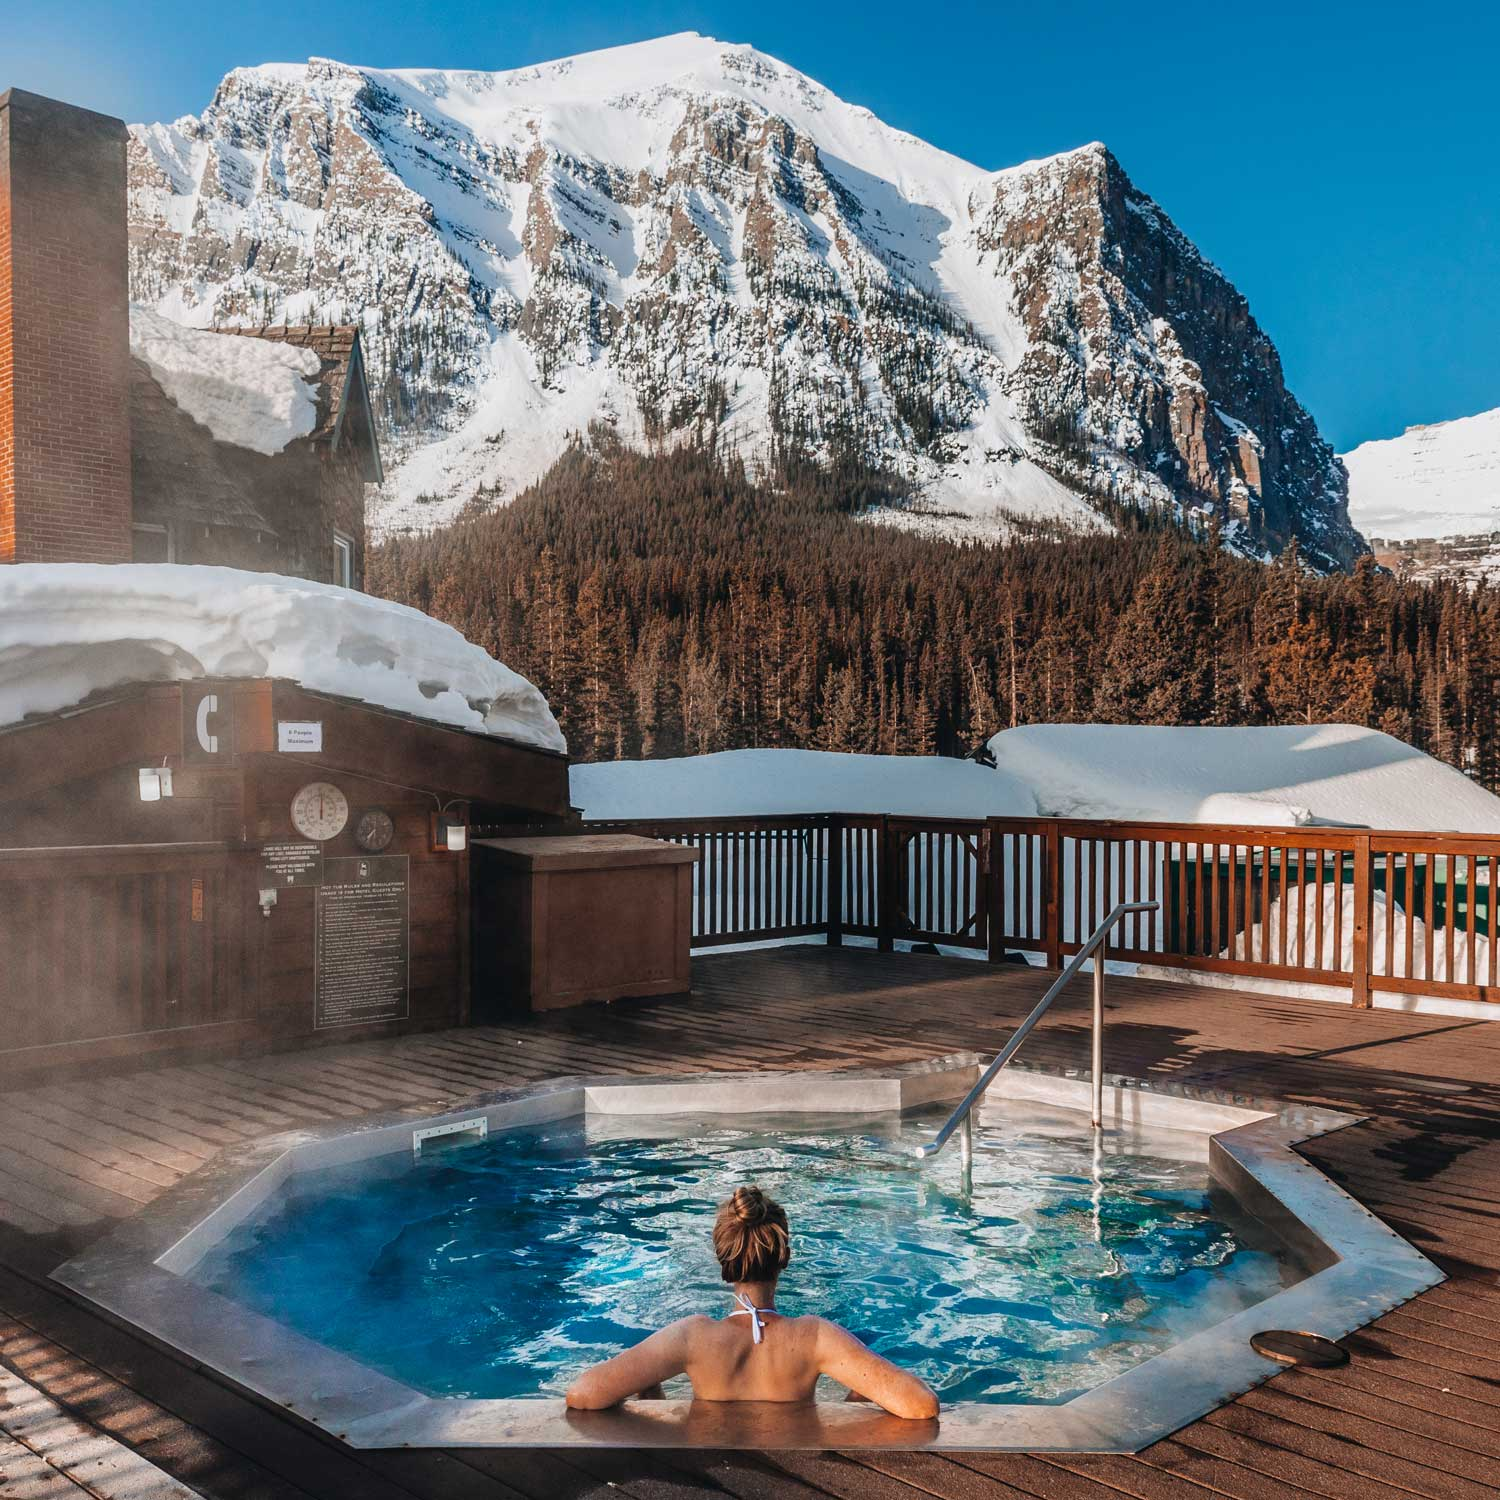 Not sure what to do in Lake Louise and Banff? This weekend guide has you covered.